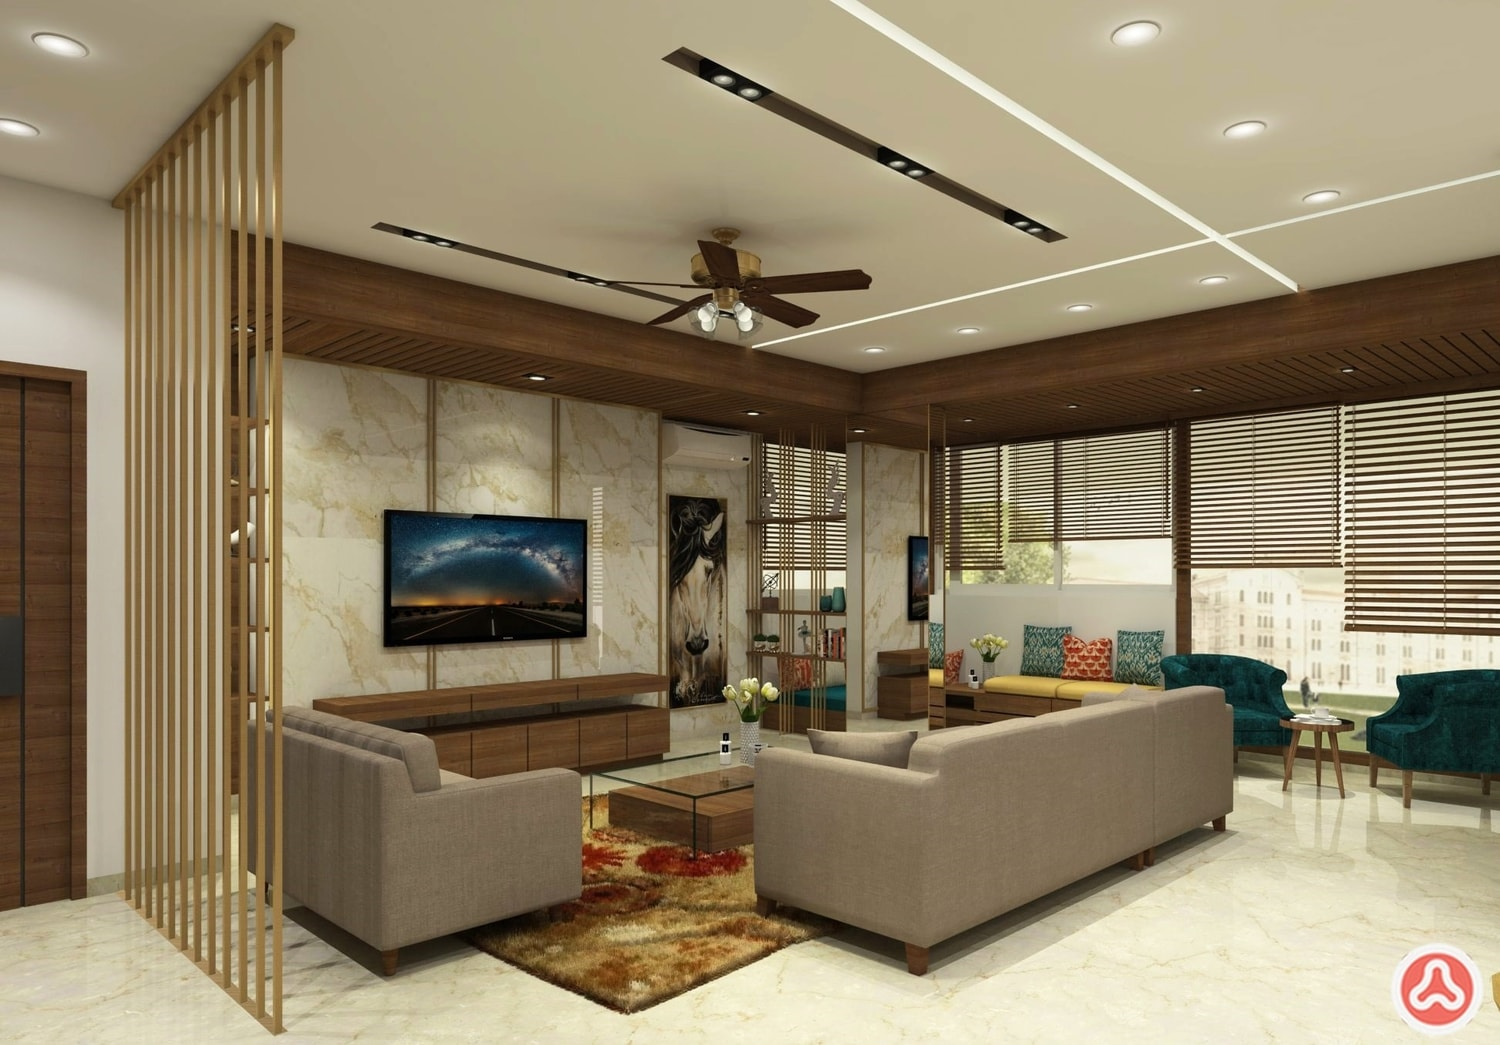 House Living room design, with sofa and solid wood beading